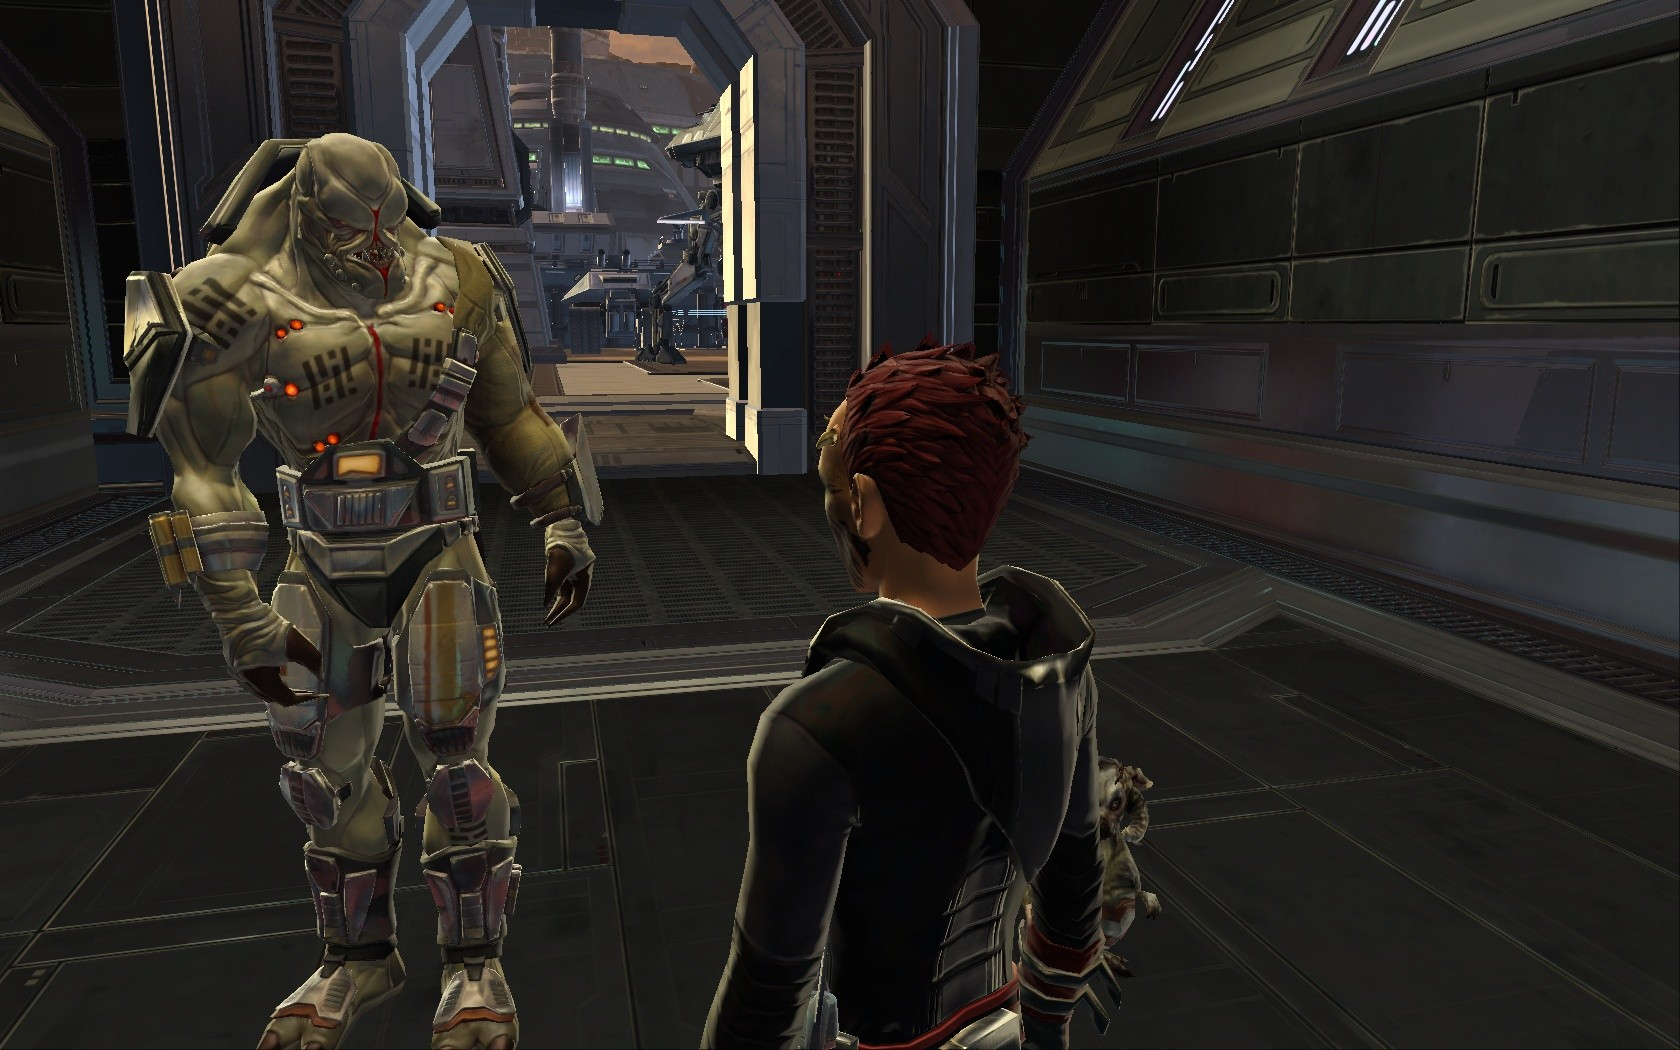 Star Wars: The Old Republic - 12k short and again poor... BUT he is awesome! =D